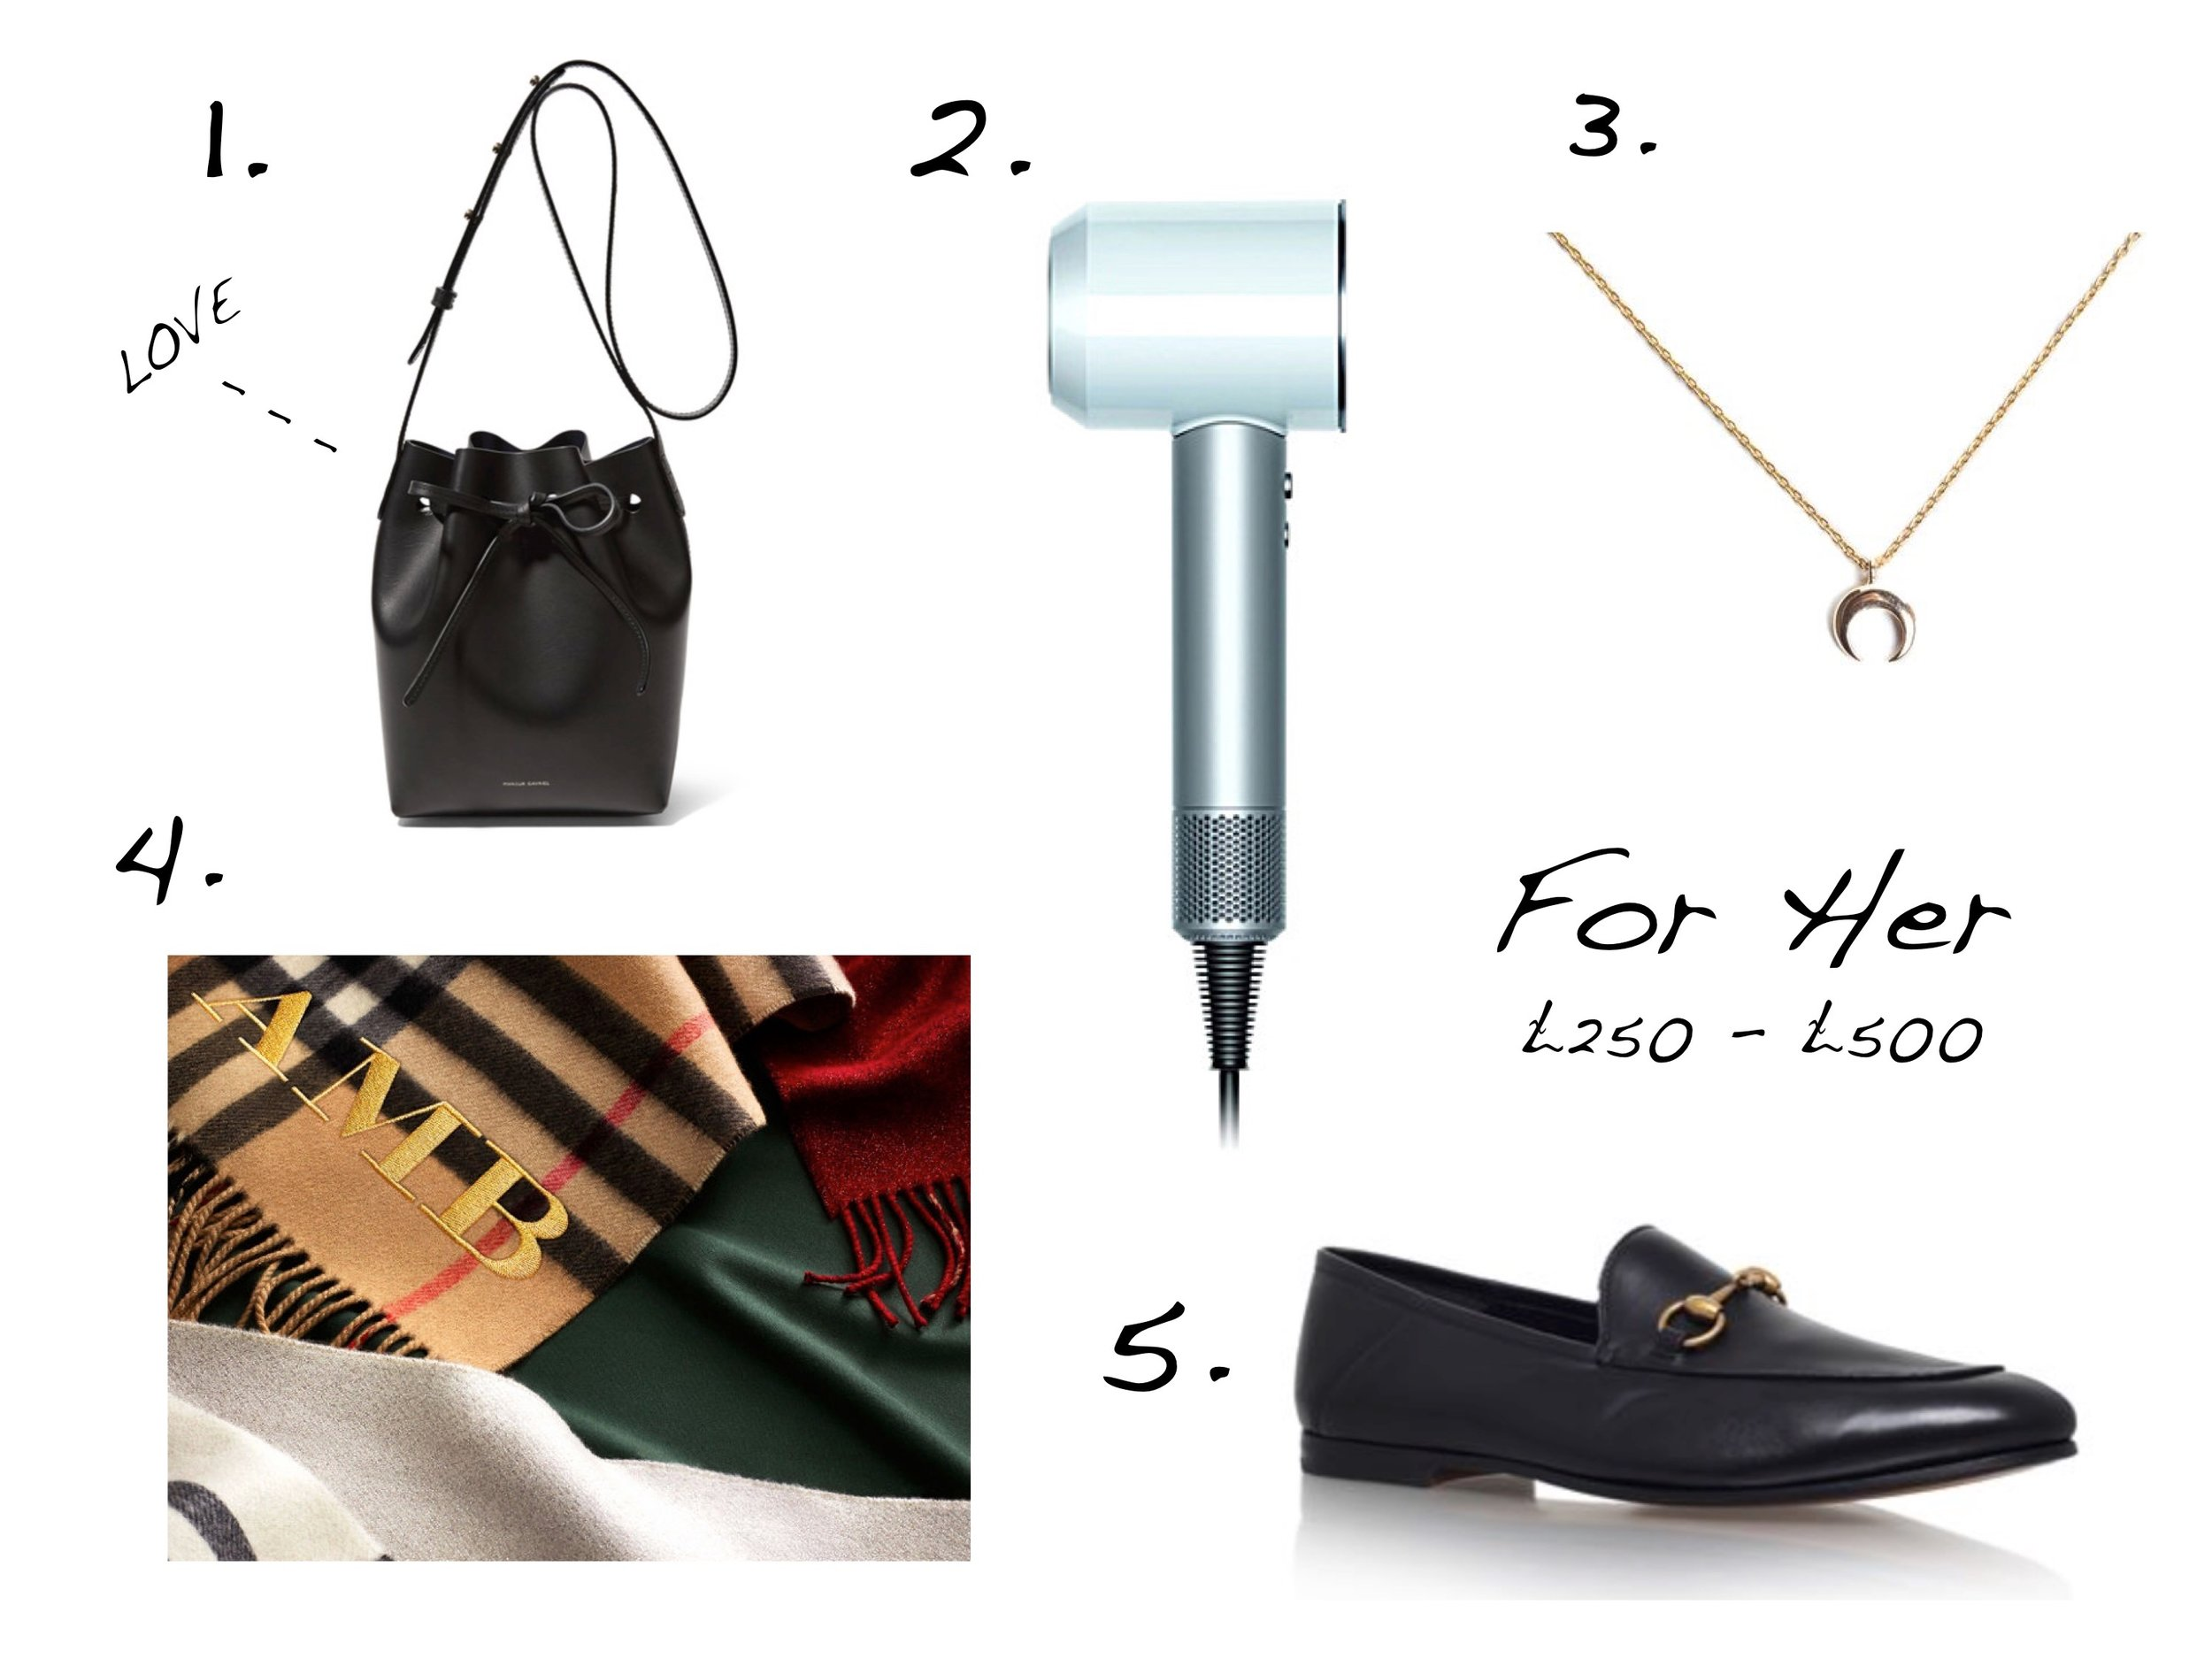 CHRISTMAS GIFT GUIDE - The Grown Up Edit